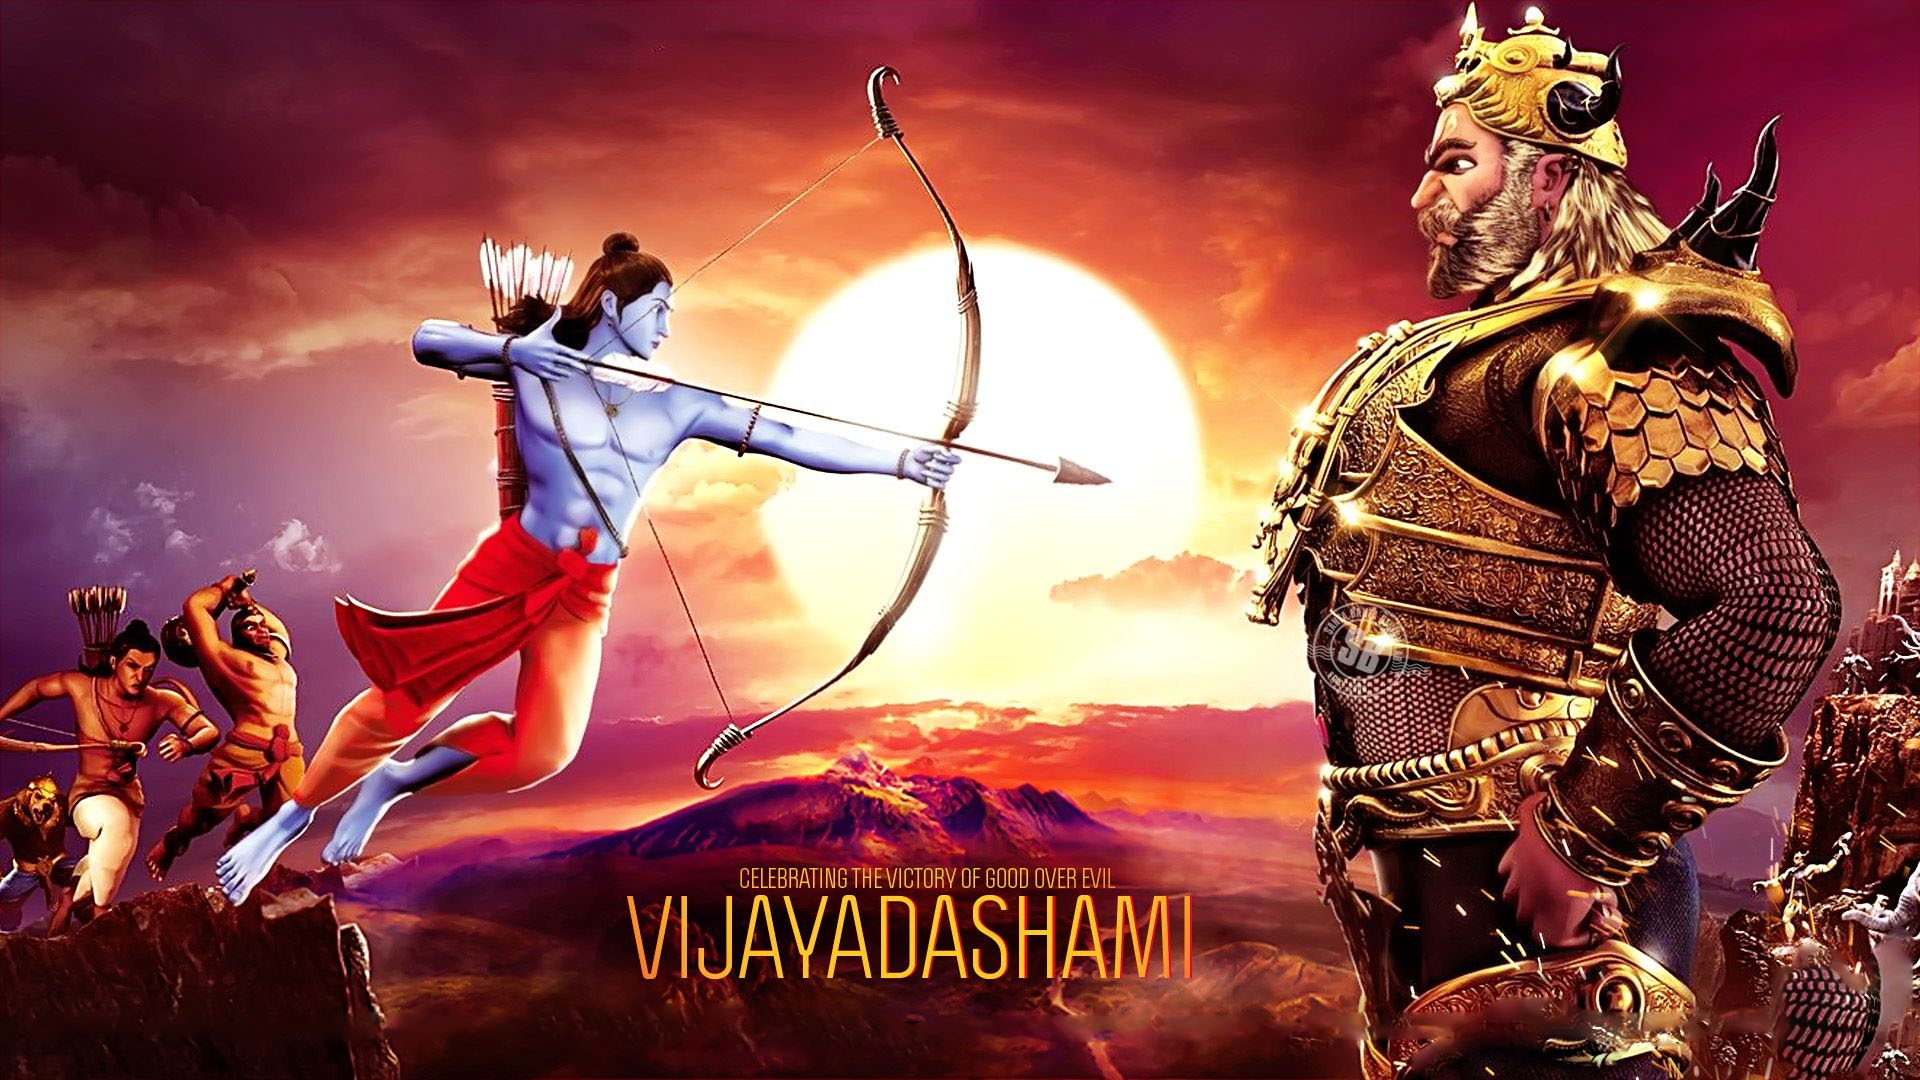 Happy Dussehra Hd Images For Facebook